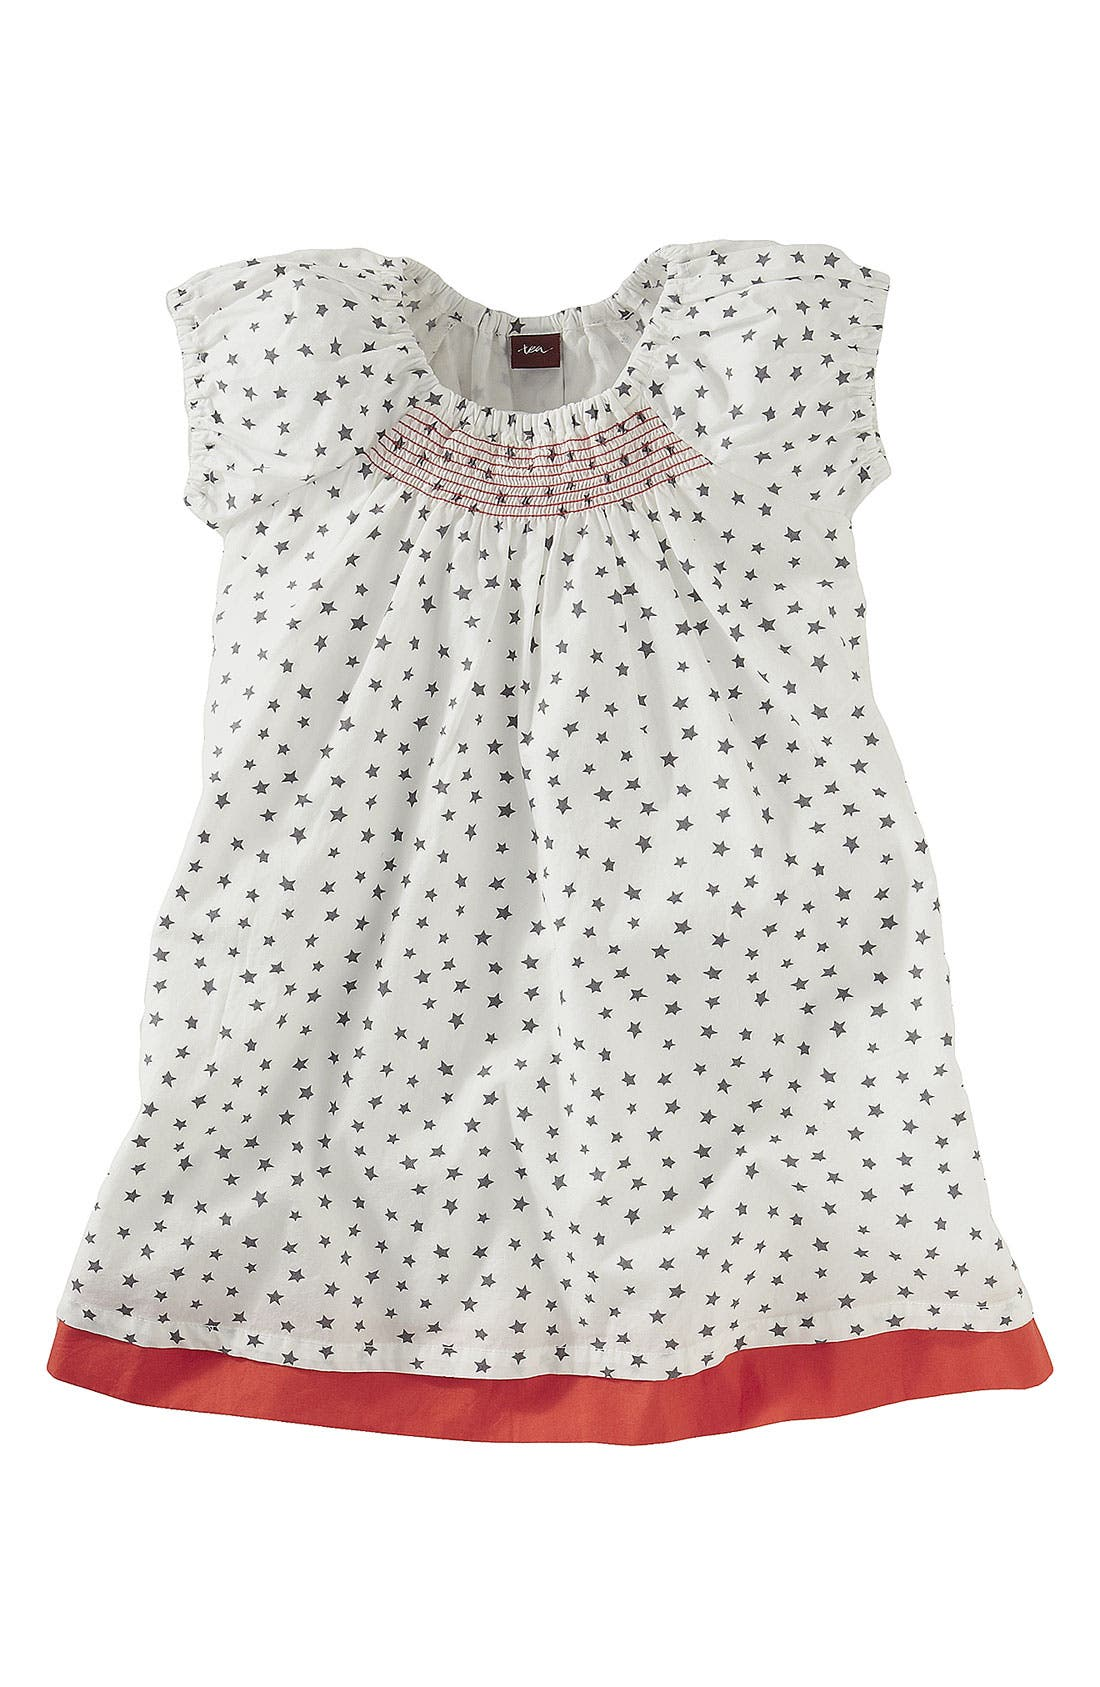 Alternate Image 1 Selected - Tea Collection Smocked Dress (Infant)